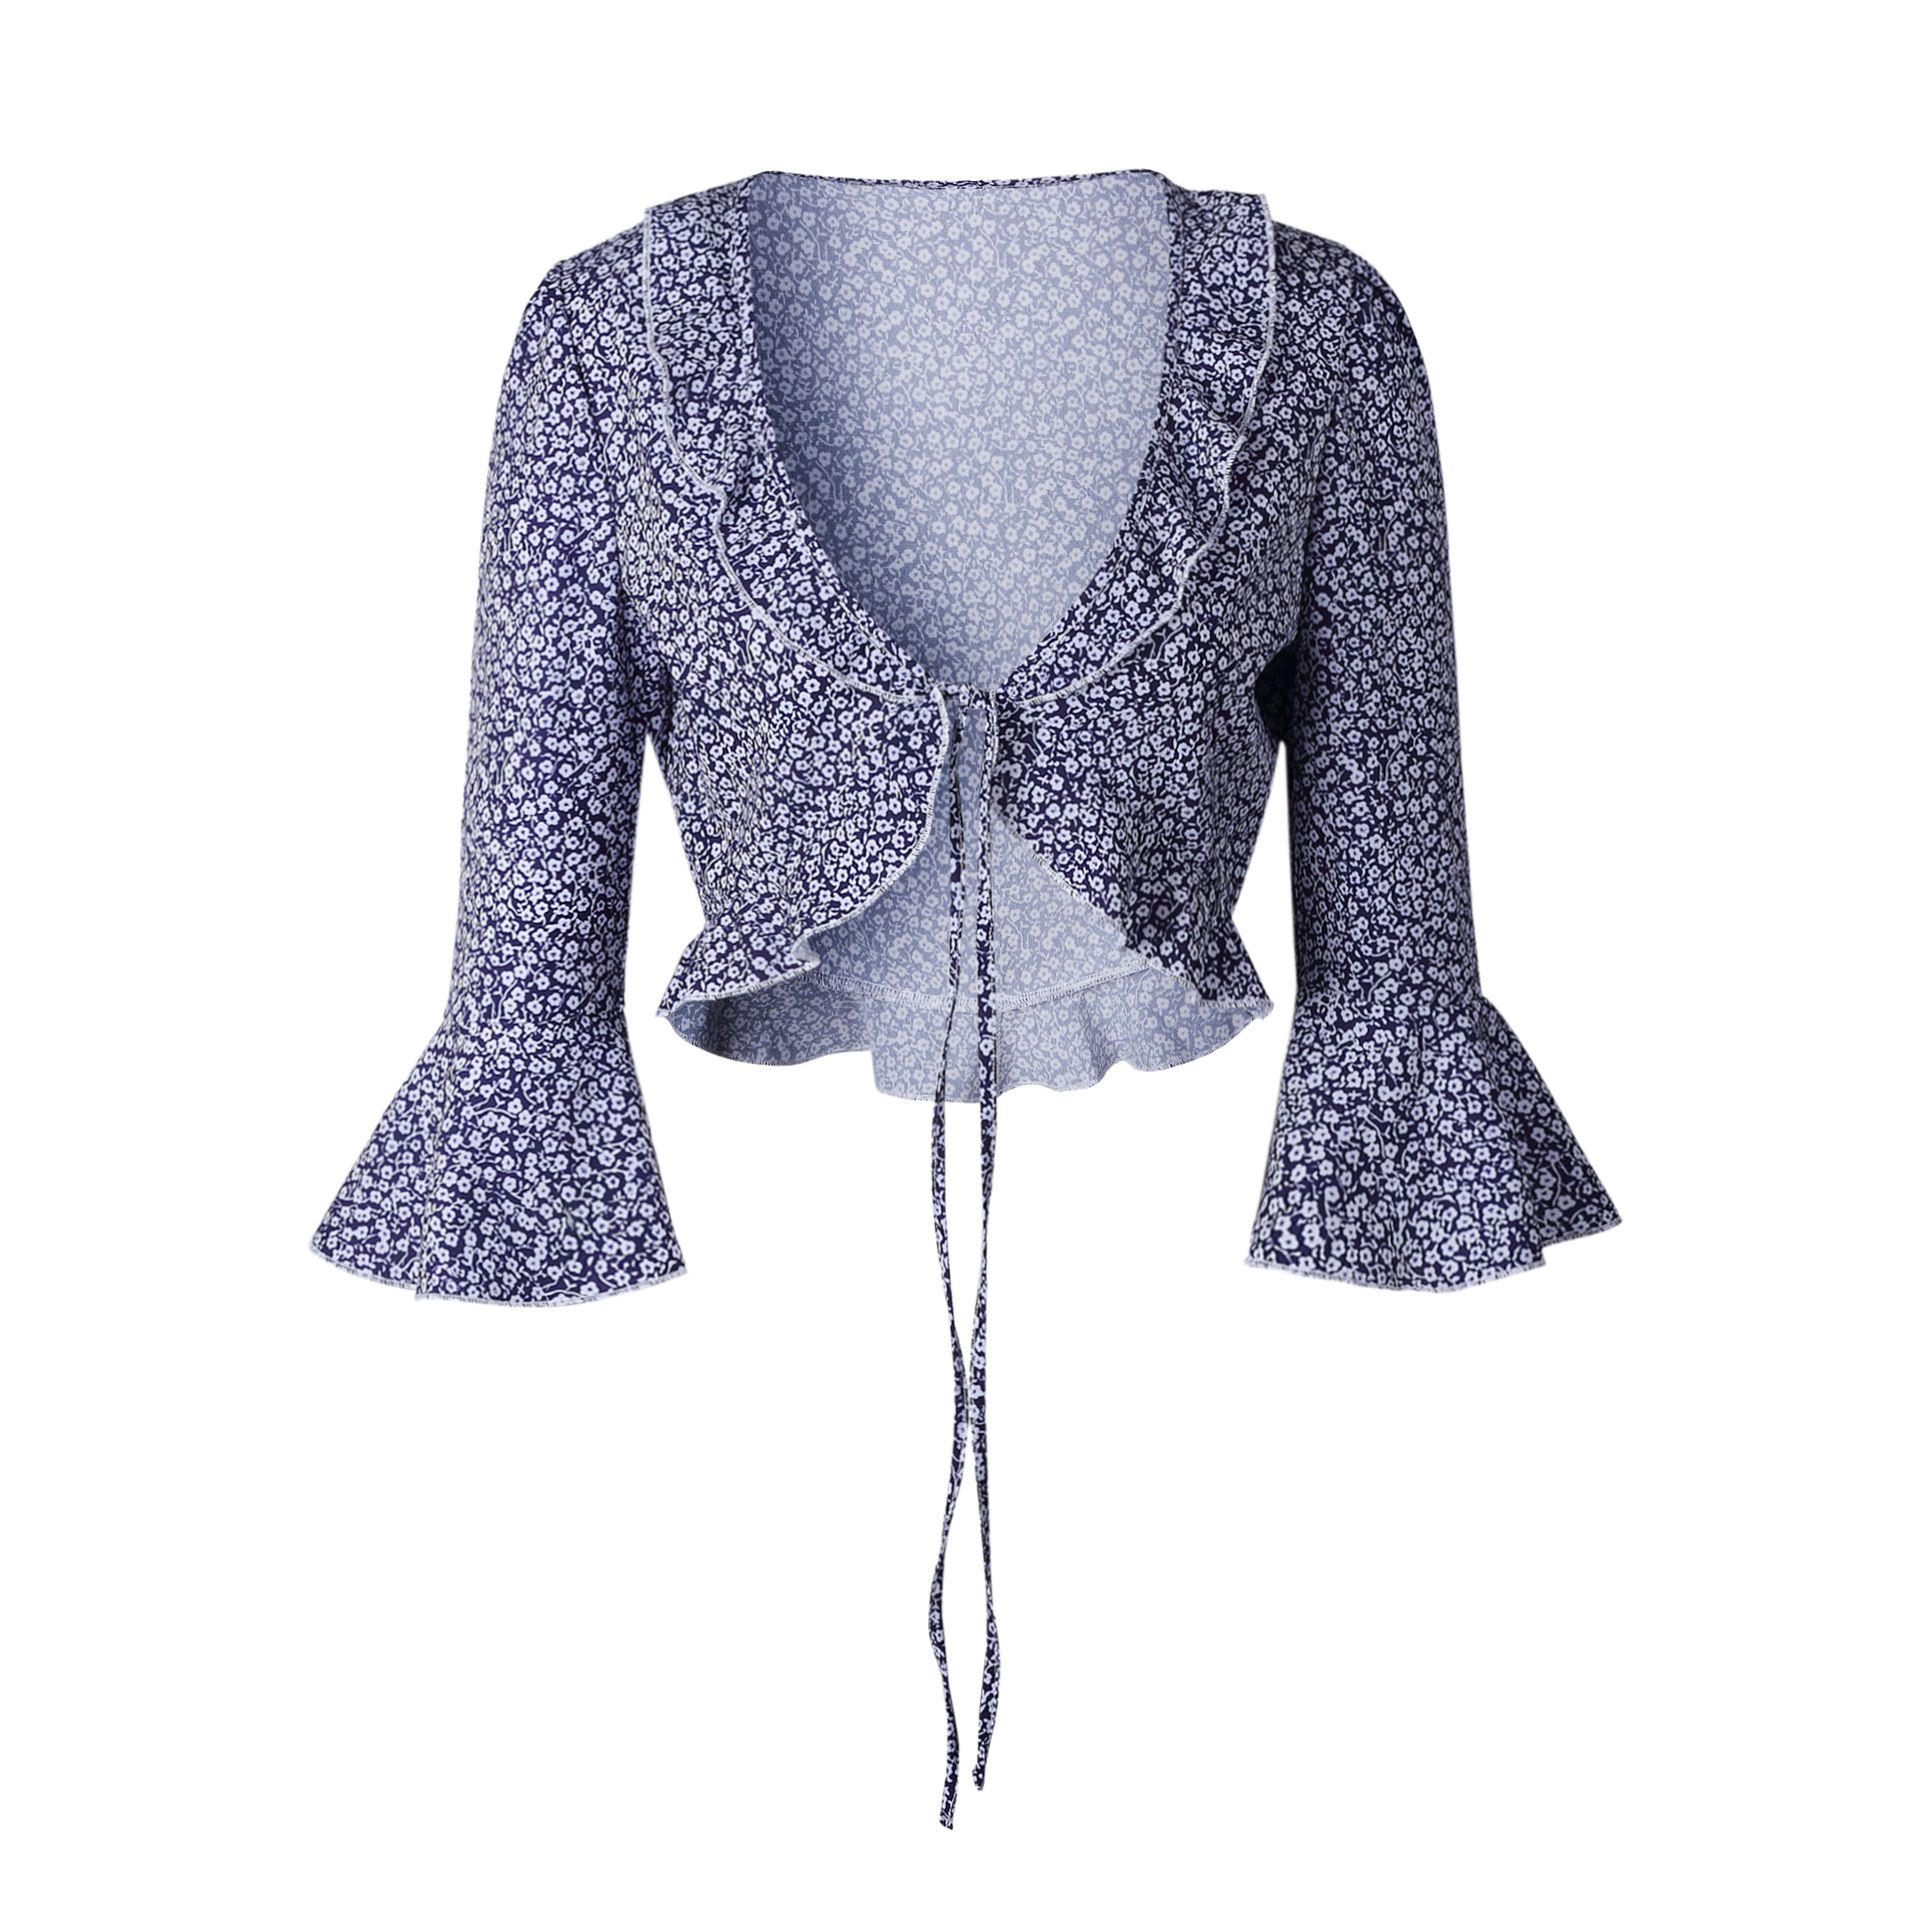 a771c00f4f Boho womens tops and blouses Vintage white dot floral printed chiffon blouse  shirt Sexy crop top ruffles kimono cardigan 2018-in Blouses   Shirts from  ...